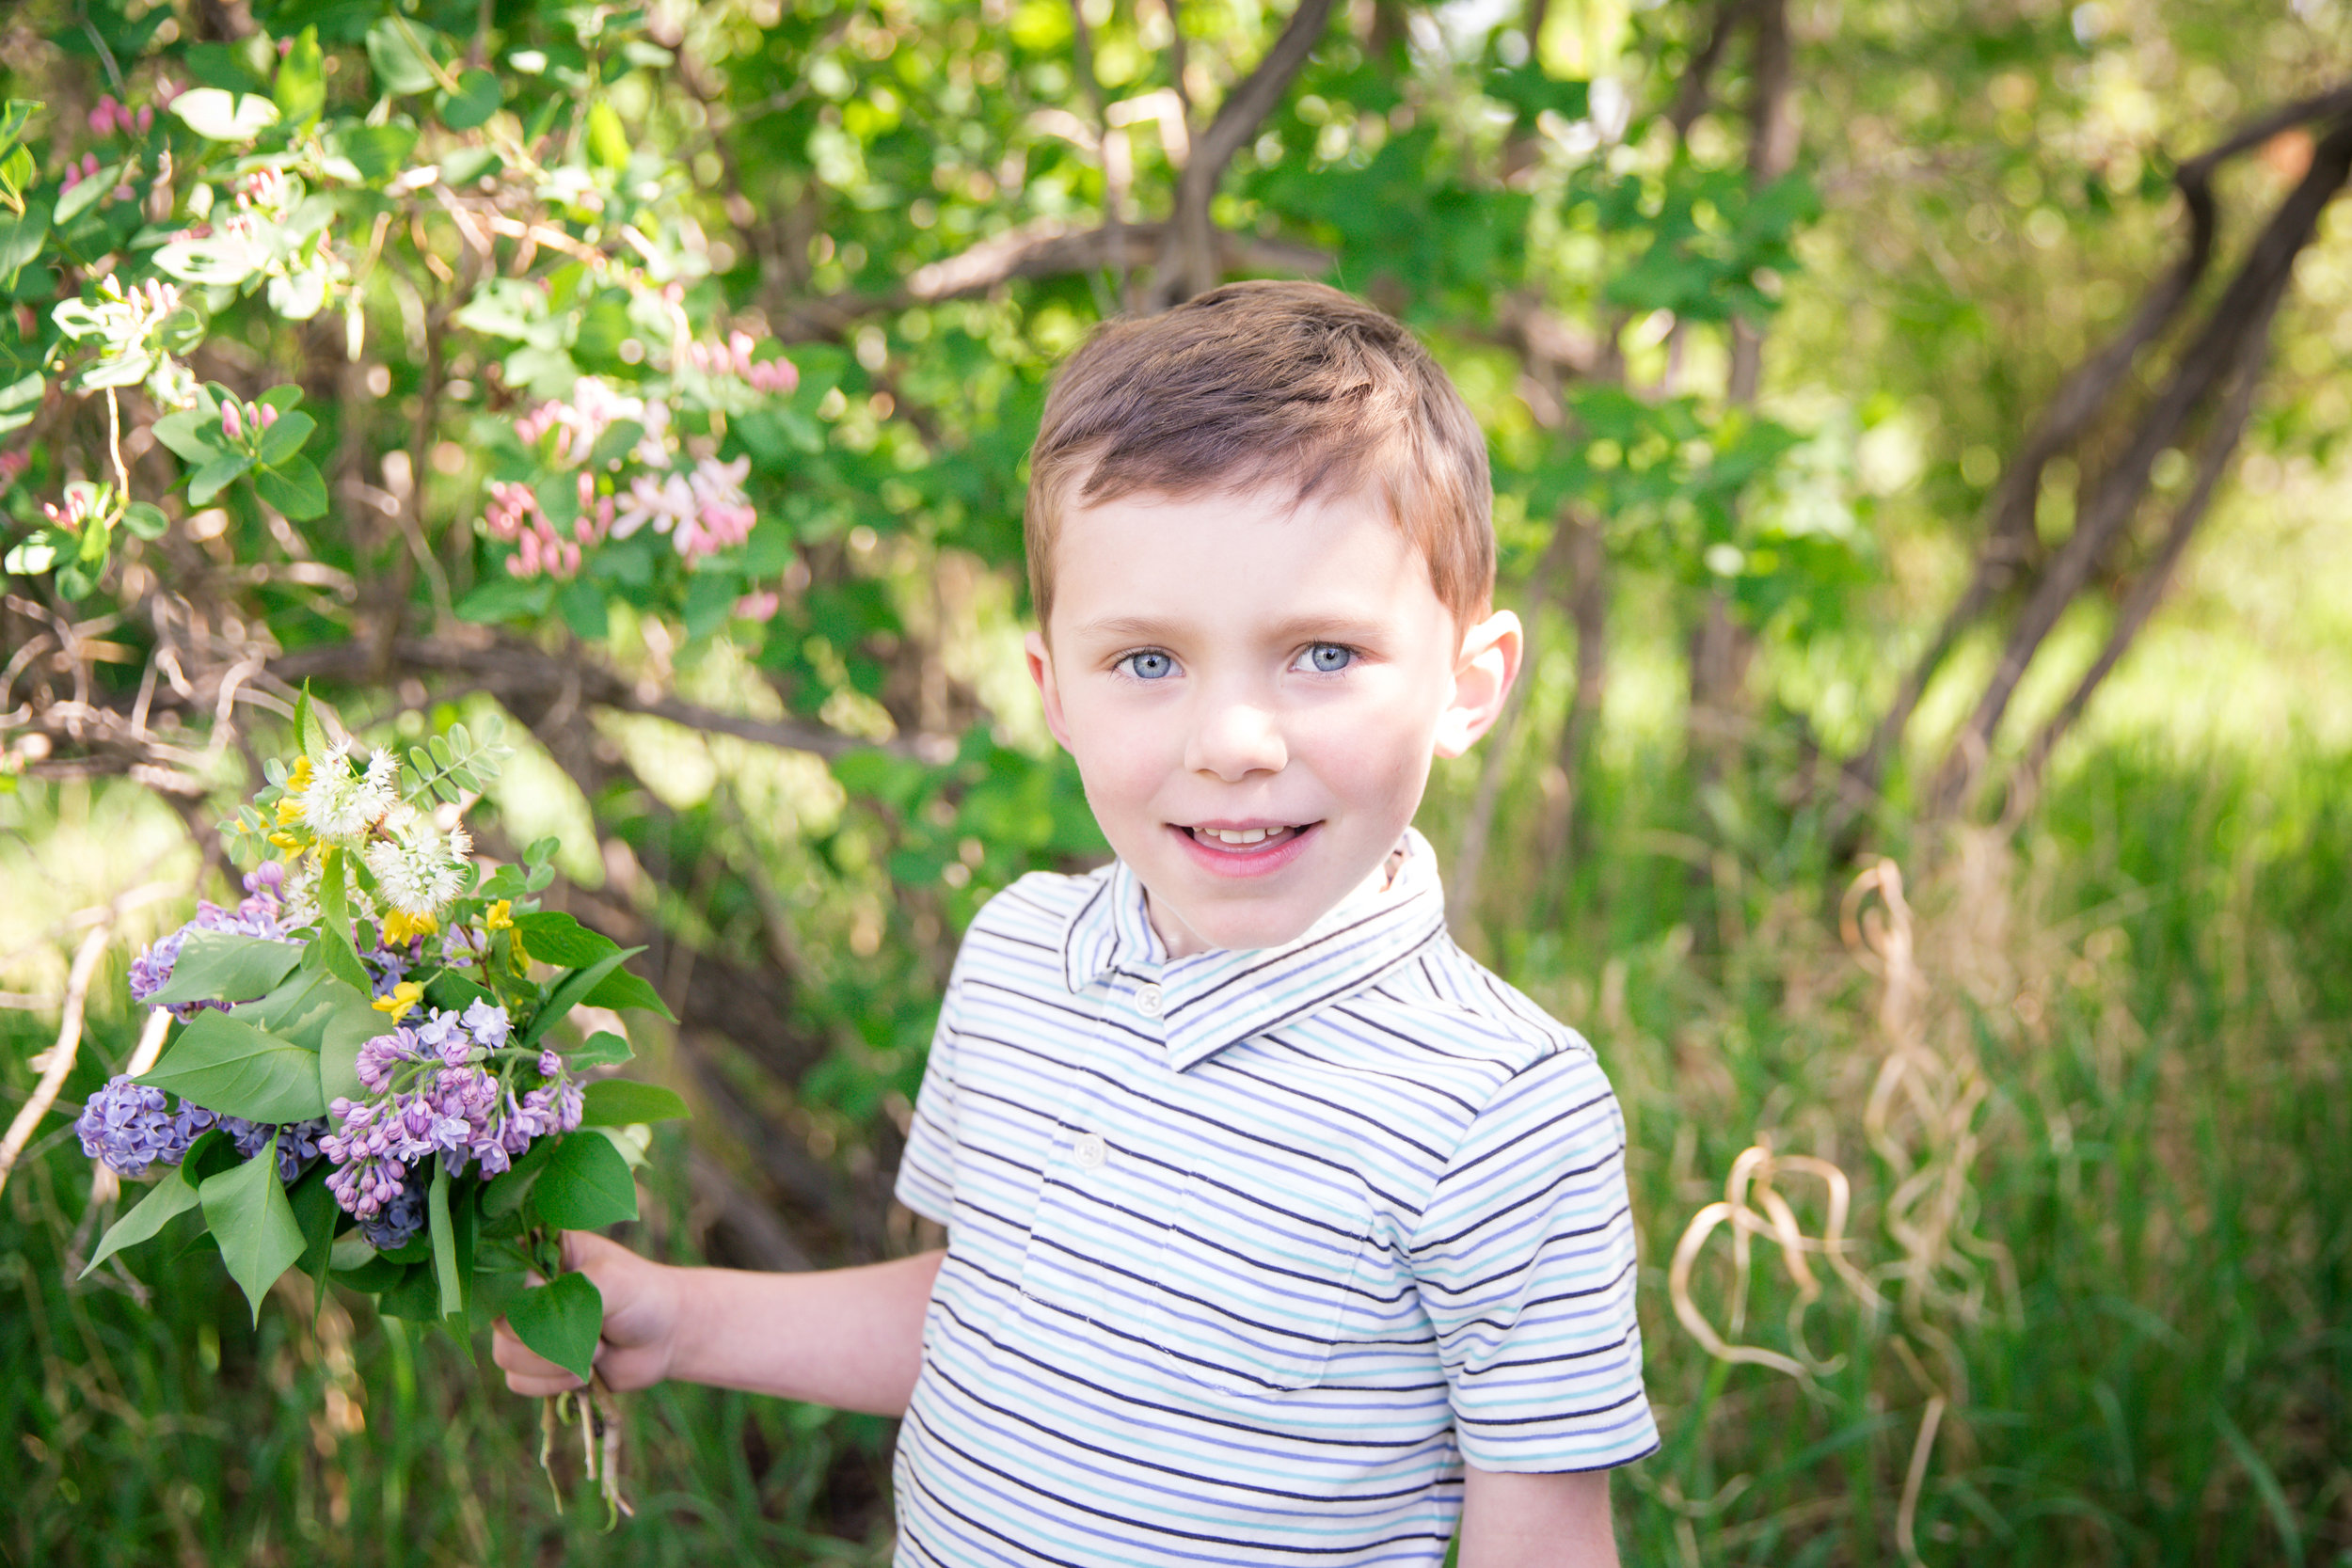 Boy standing by lilac tree and smiling. Calgary child photographer. Milashka Photography